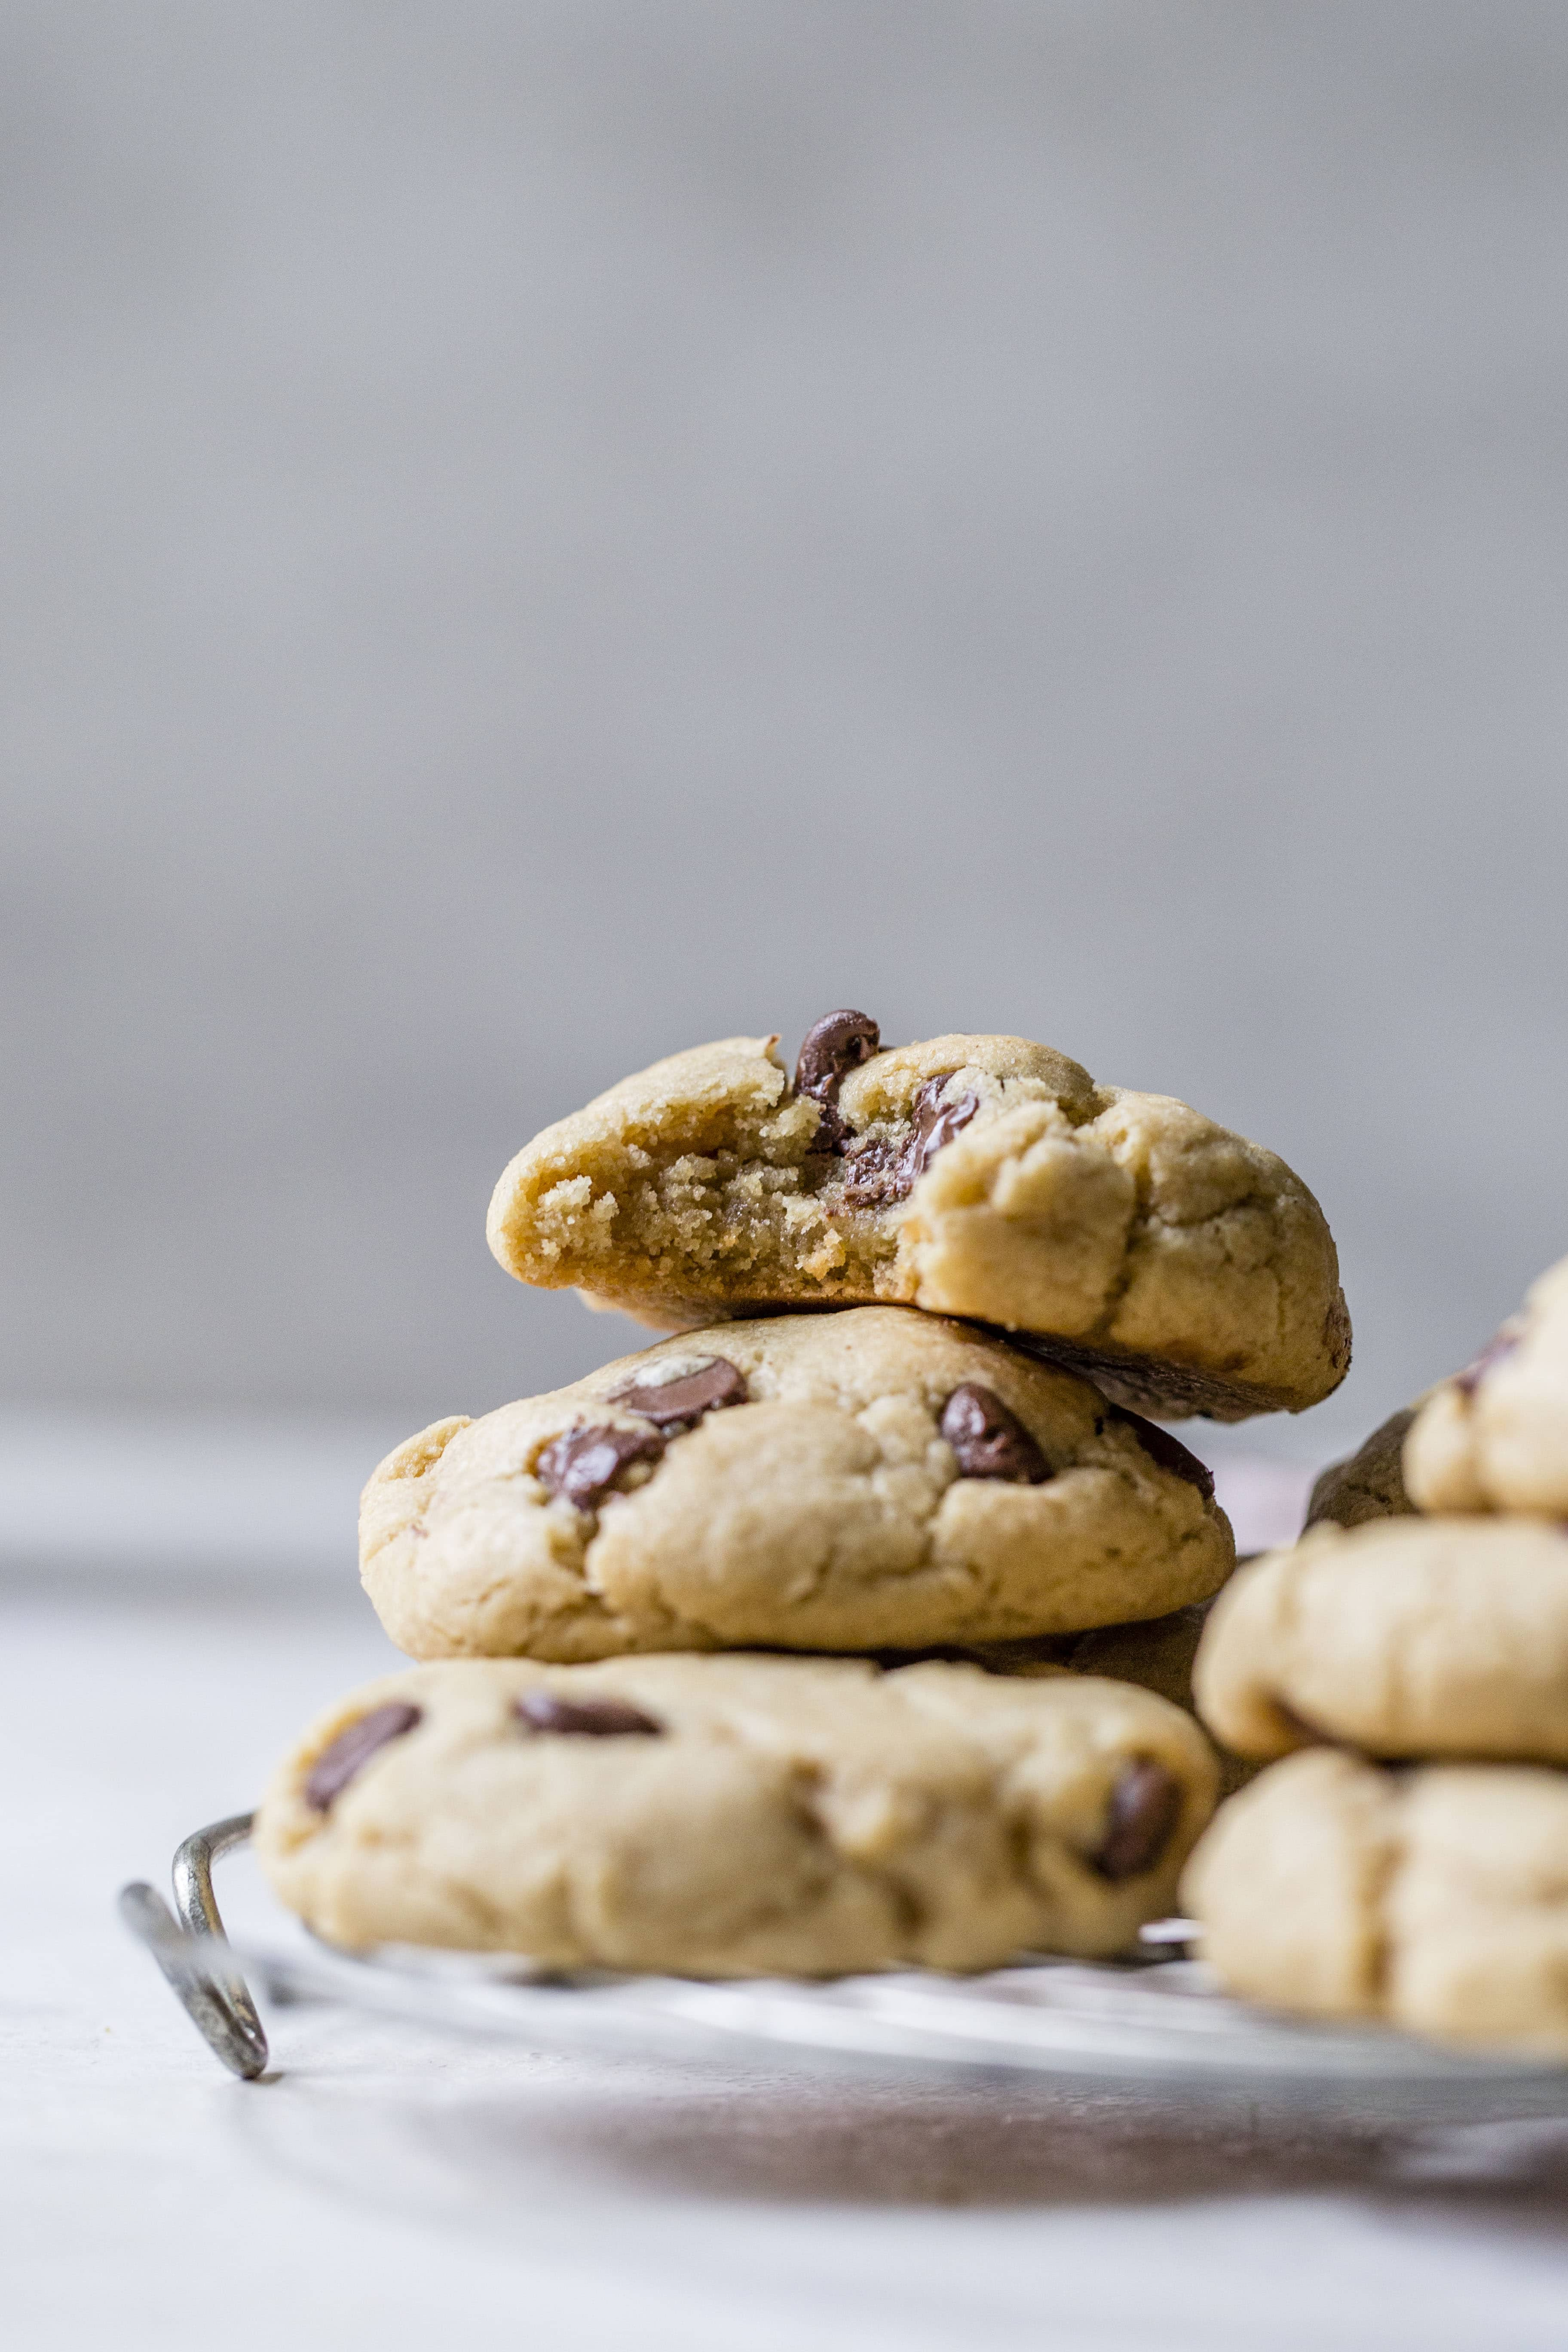 These puffy peanut butter cookies with chocolate chips are my most favorite peanut butter chocolate chip cookie ever! They are soft but also a little chewy and the combination is just to die for! Comes together super easily too. I howsweeteats.com #peanutbutter #cookies